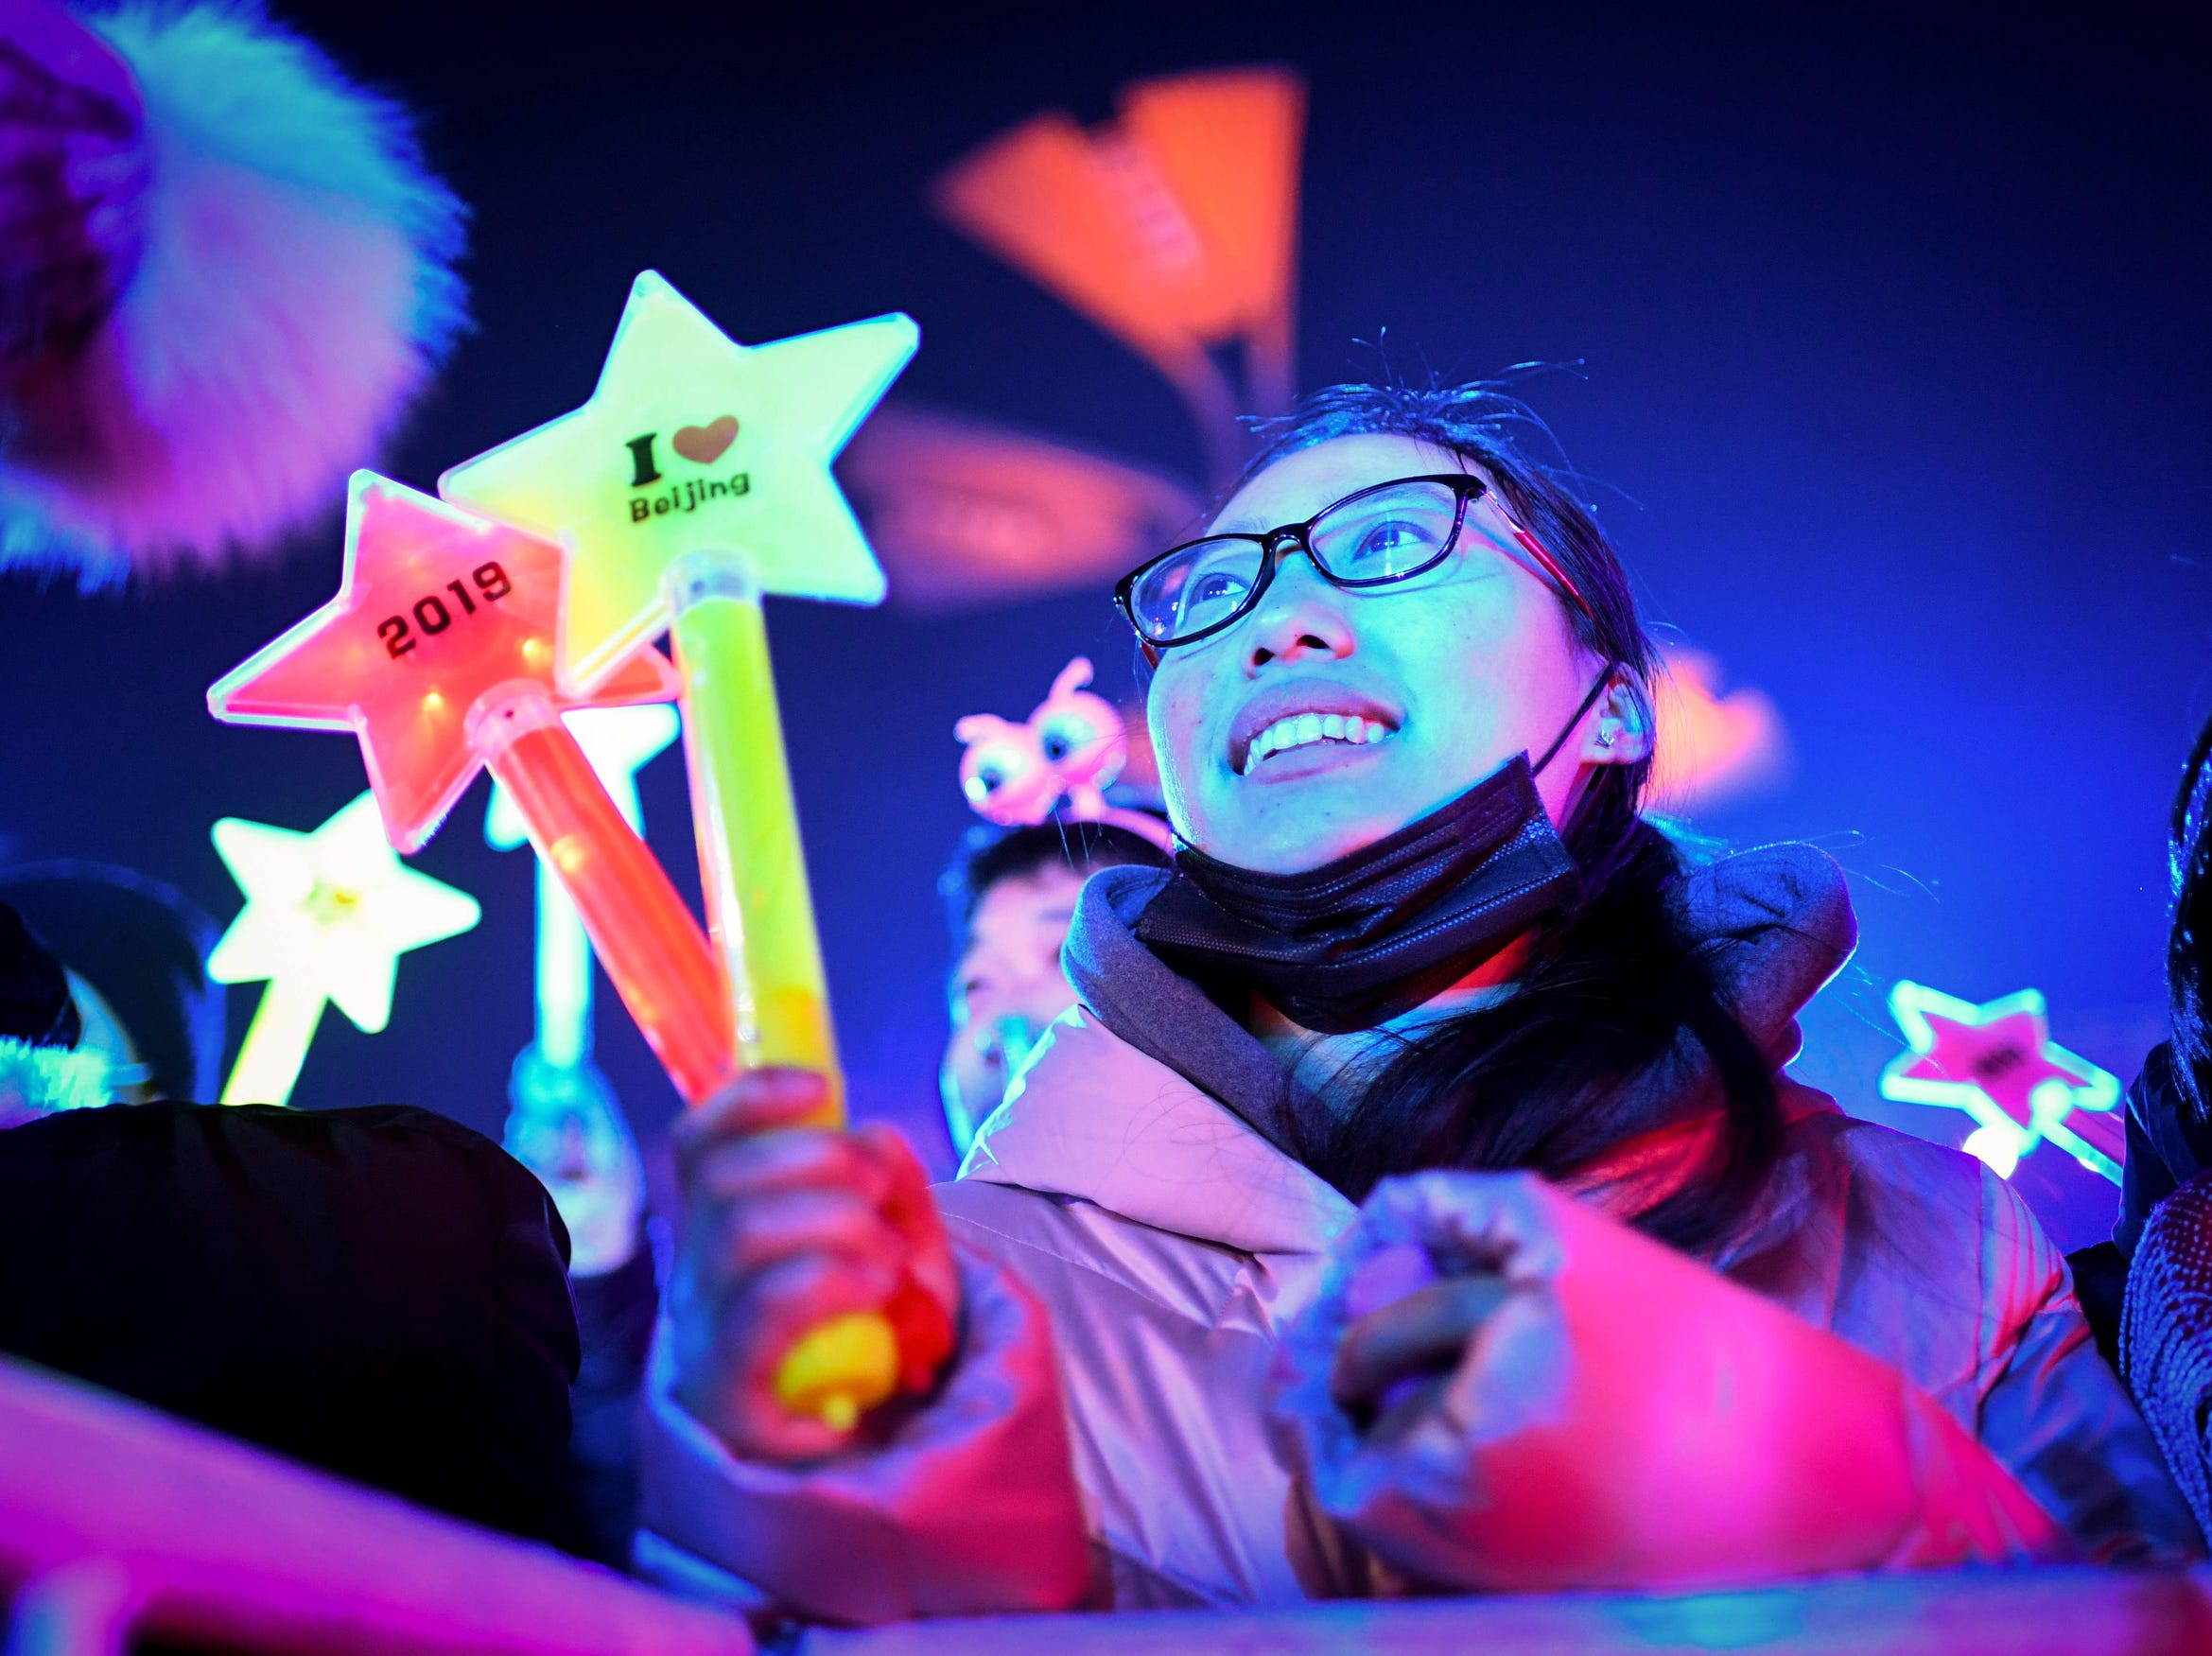 A woman looks on as she waits for celebrating the New Year during a New Year's Eve countdown event in front of Beijing's National Stadium, known as the Bird's Nest, in Beijing.